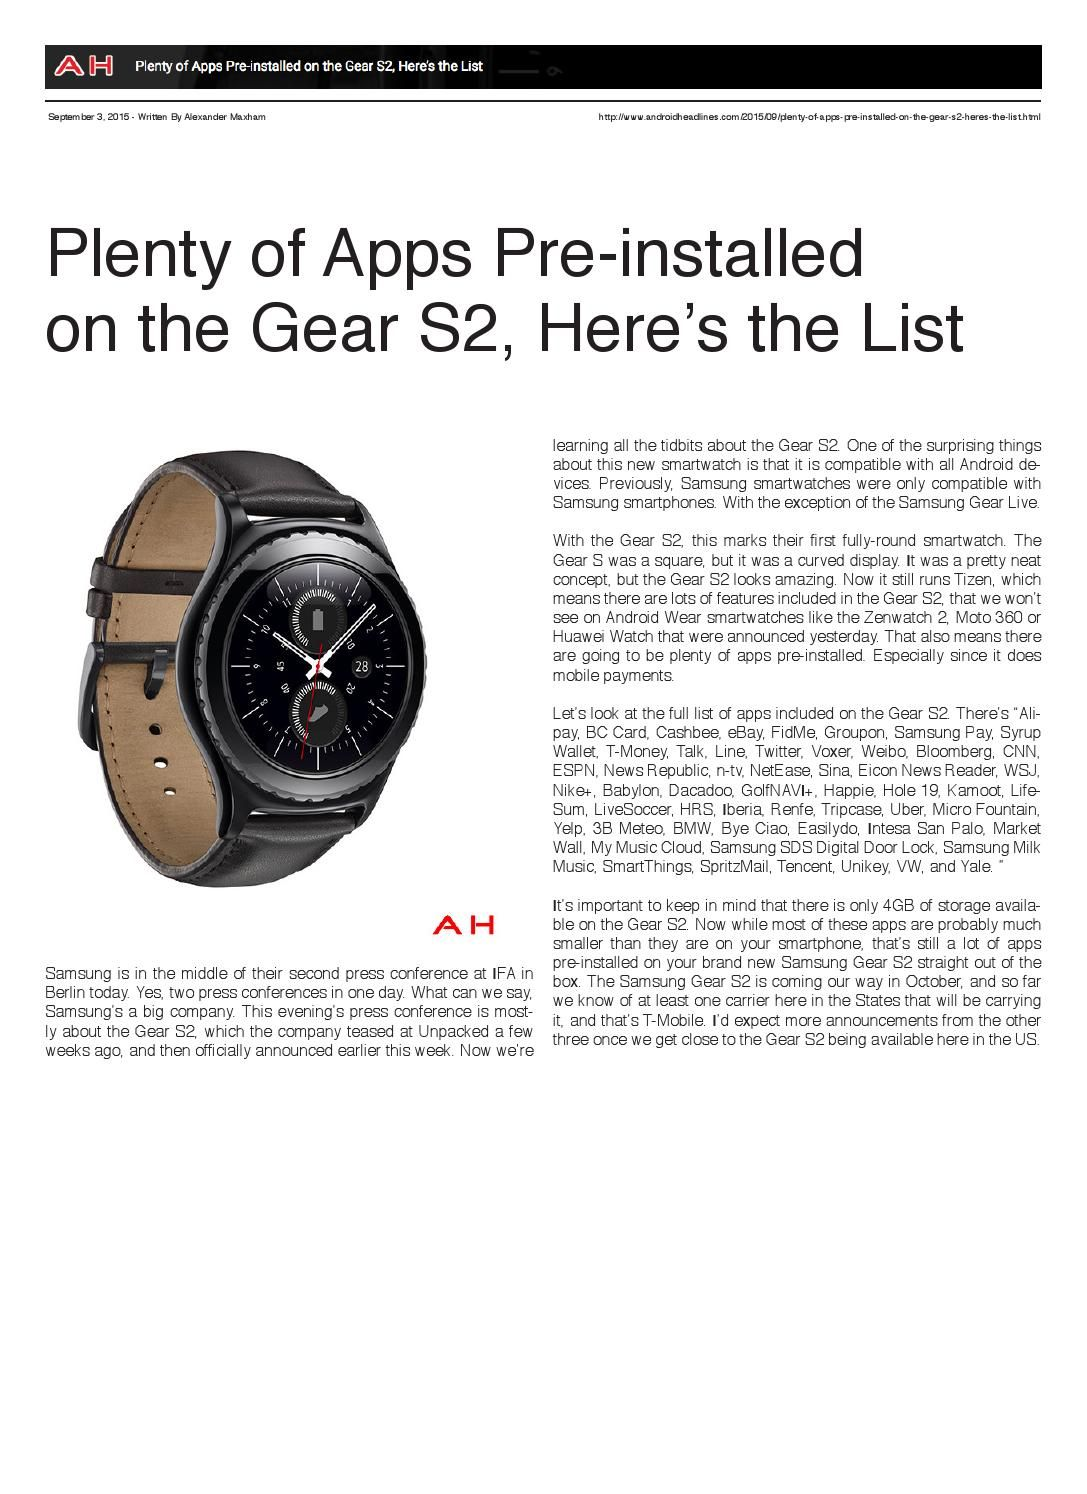 Androidheadlines 2015 App, Smart watch, New readers